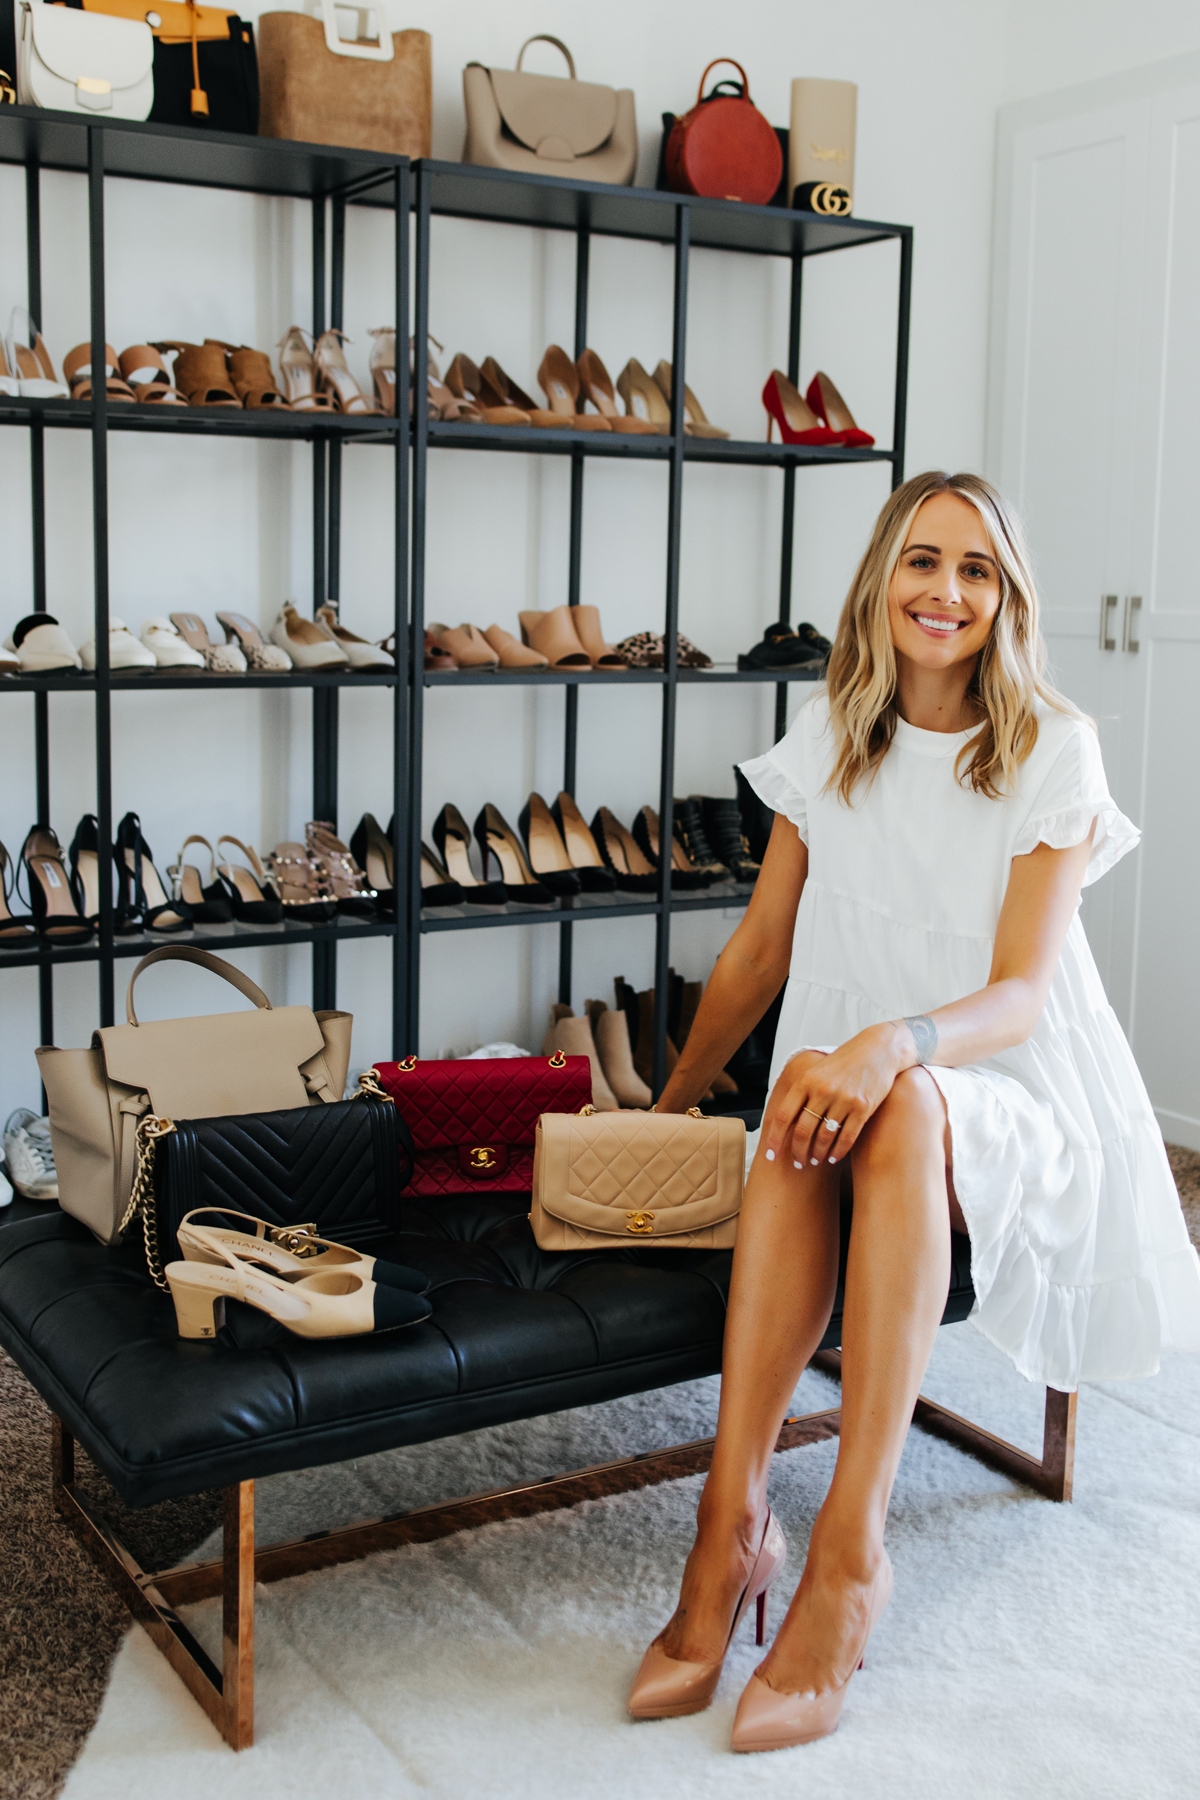 Fashion Jackson Wearing White Ruffle Dress in Closet Office Designer Handbag Designer Shoes